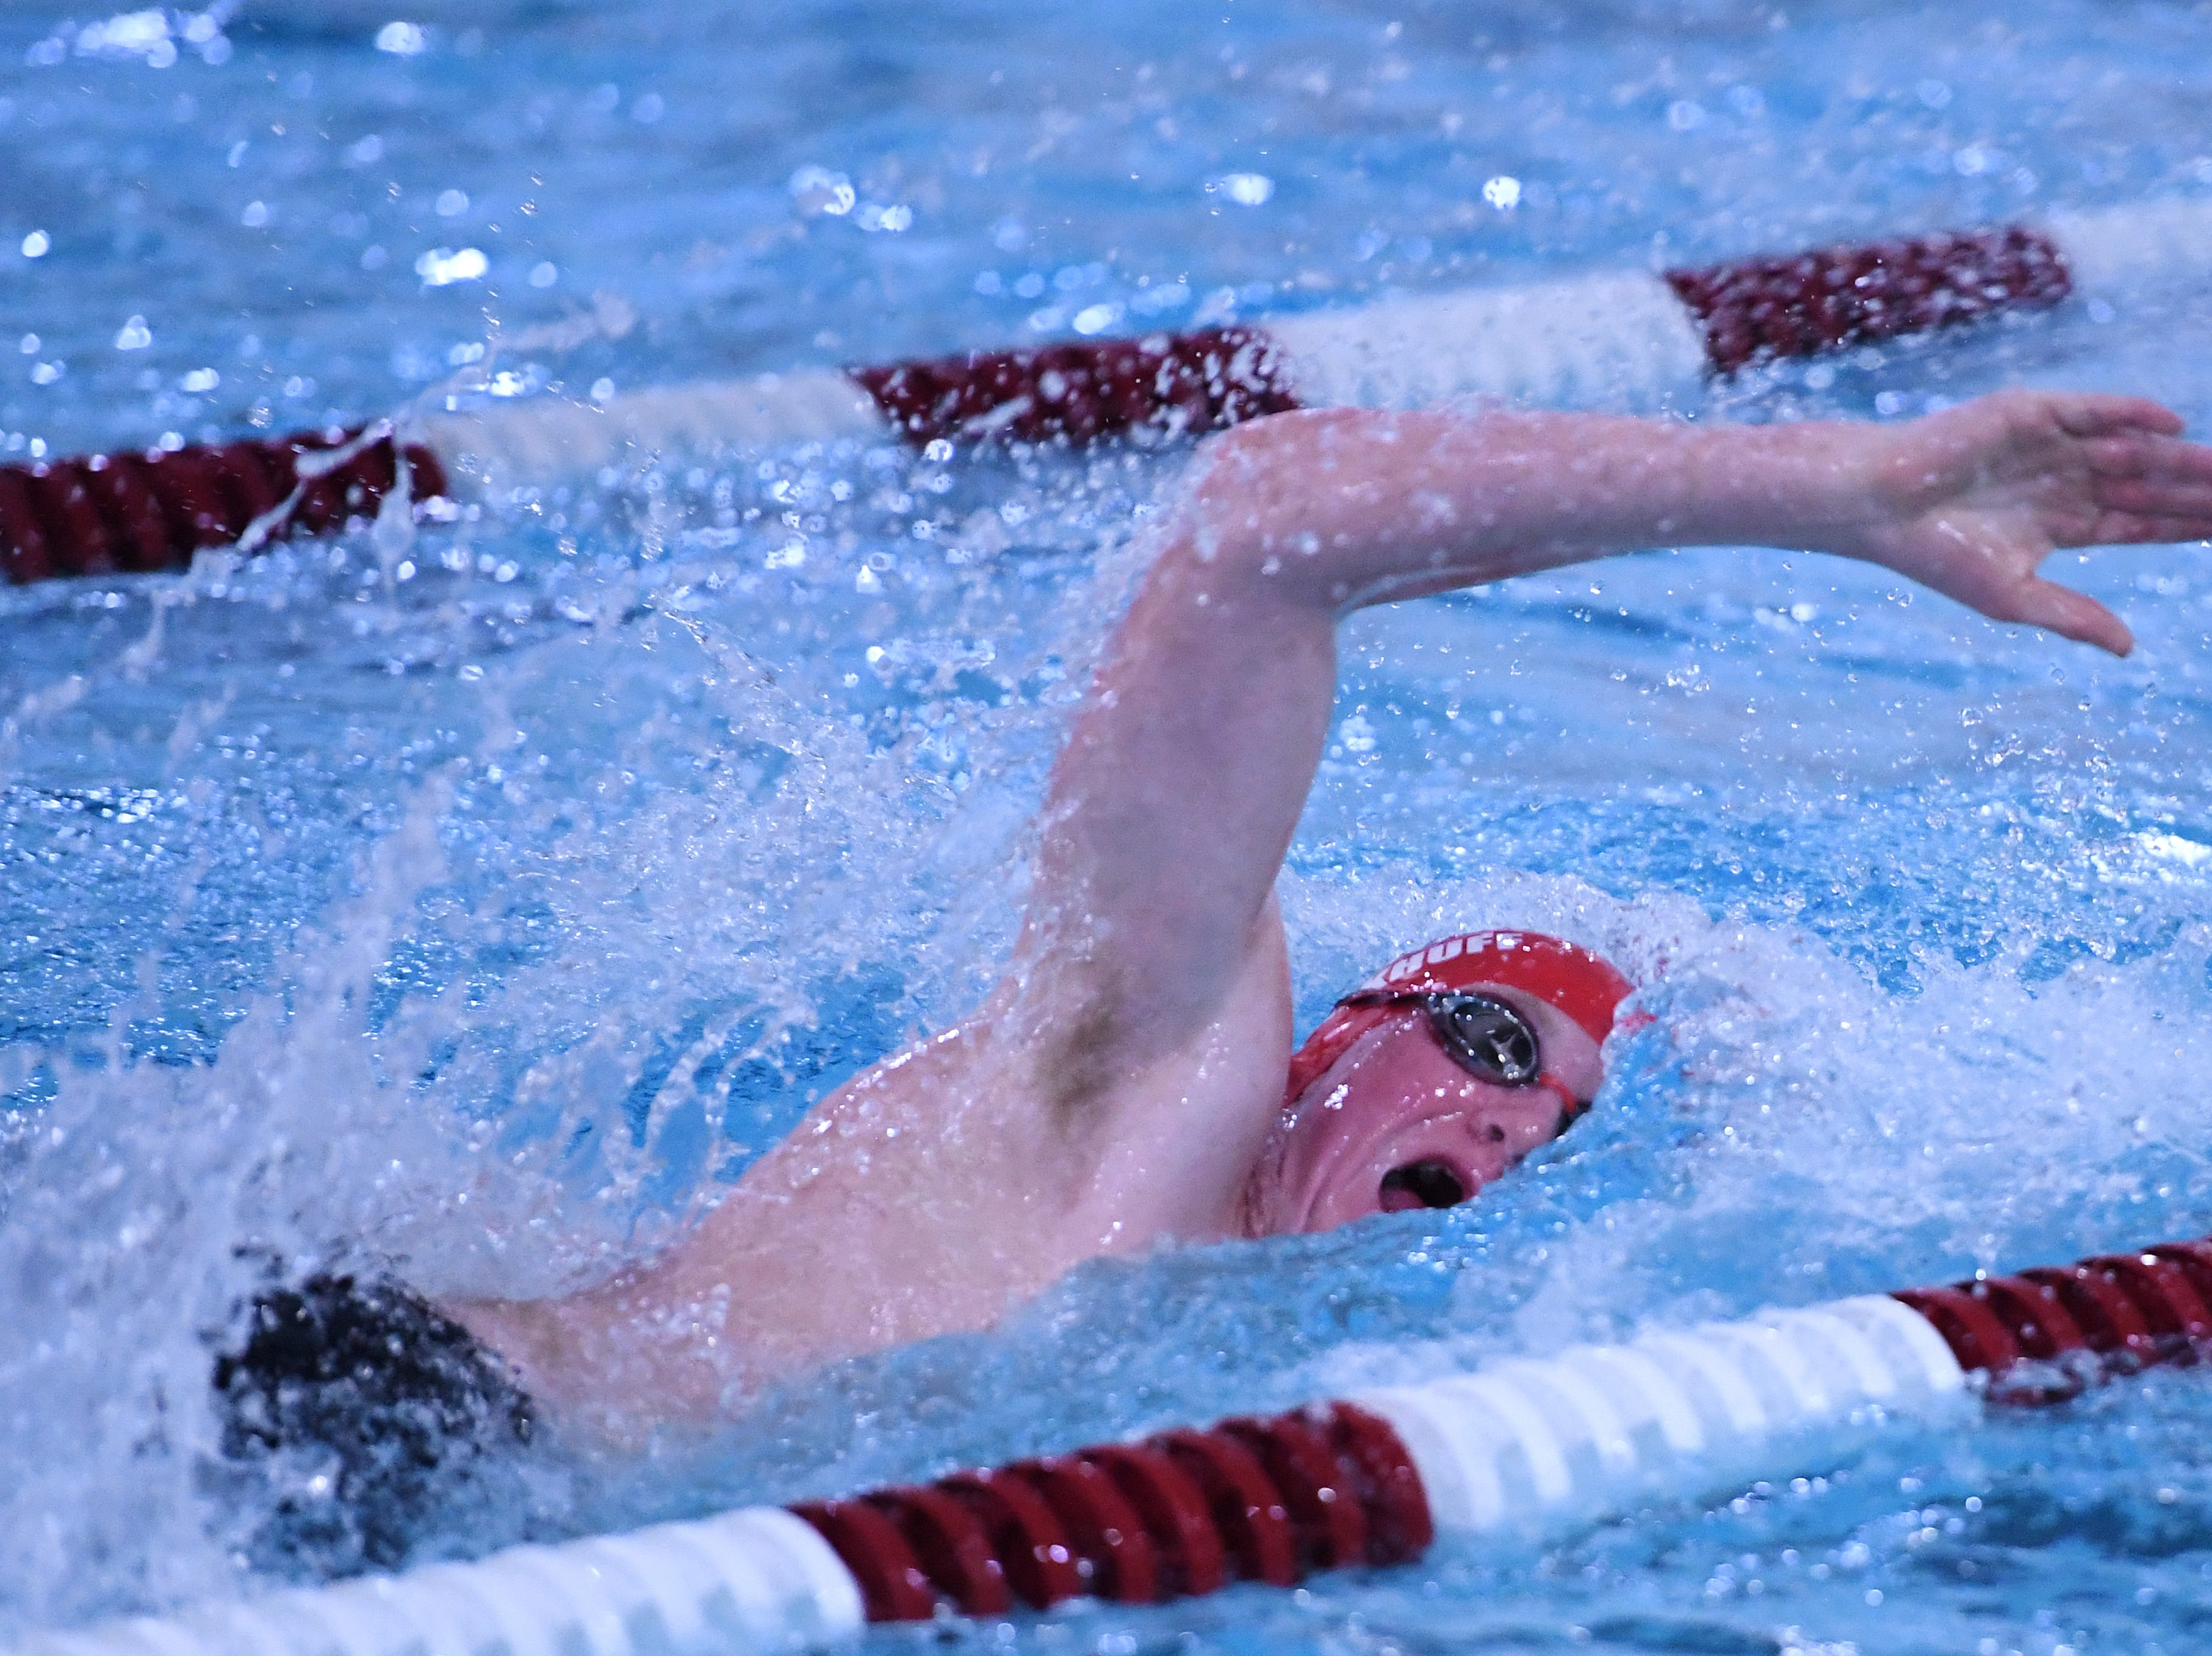 Morris County Swimming Championships at Morristown High School on Saturday, January 26, 2019. Will Carkhuff of Mendham in the Boys 100 SC Meter Freestyle.